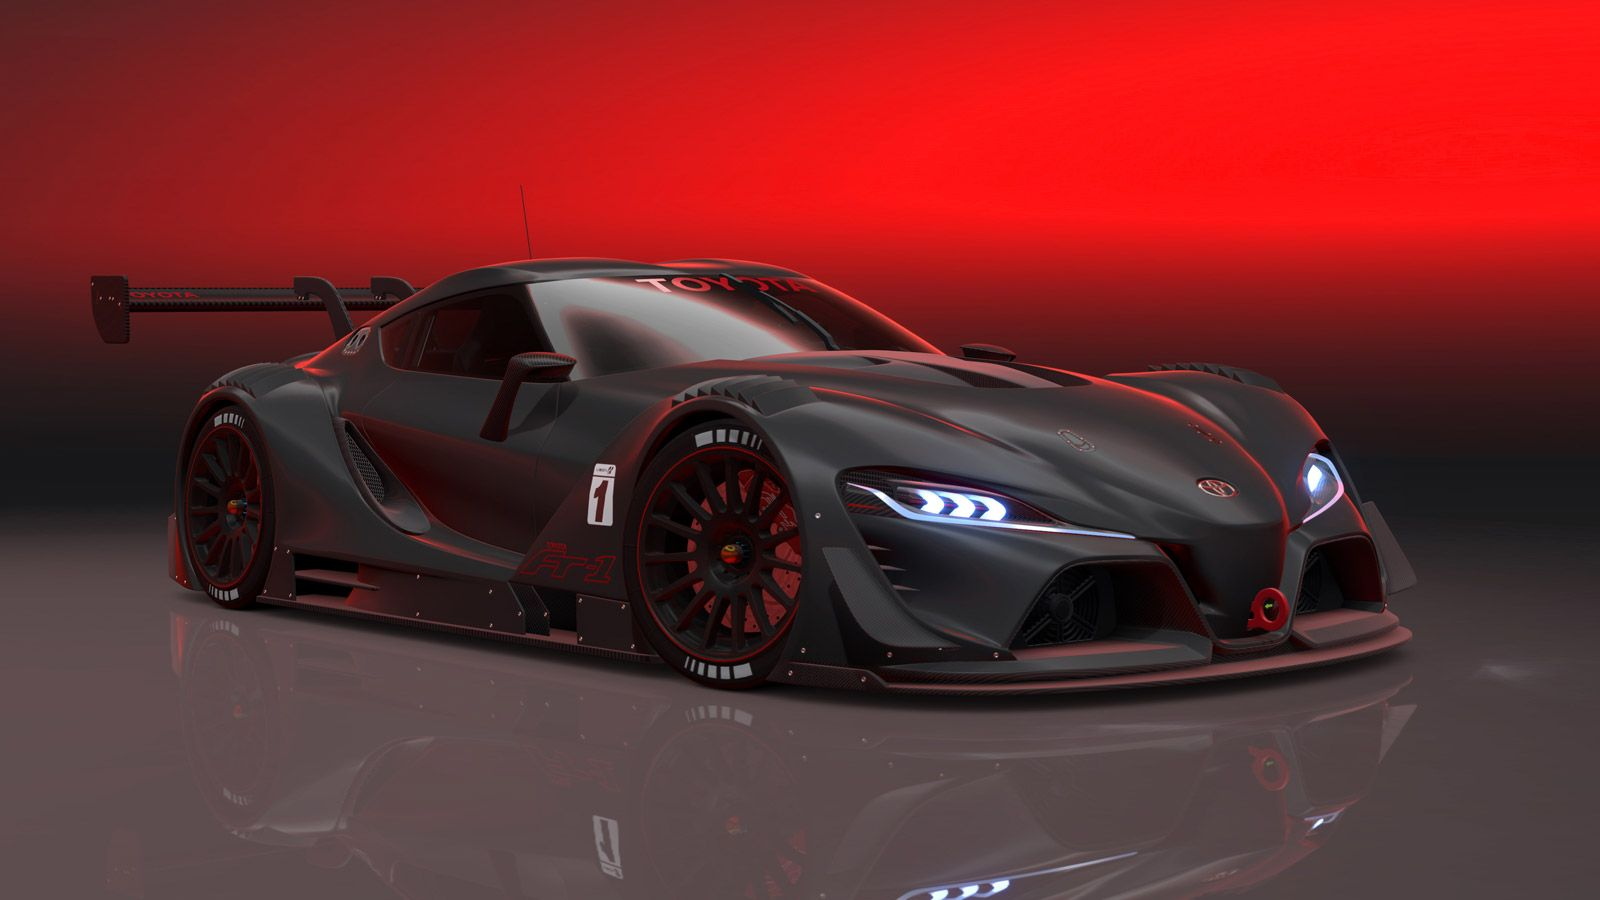 Toyota Ft 1 Vision Gran Turimso Ready For Download In Gt6 Video Concept Cars Super Cars Toyota 2014 toyota ft 1 vision gt 2